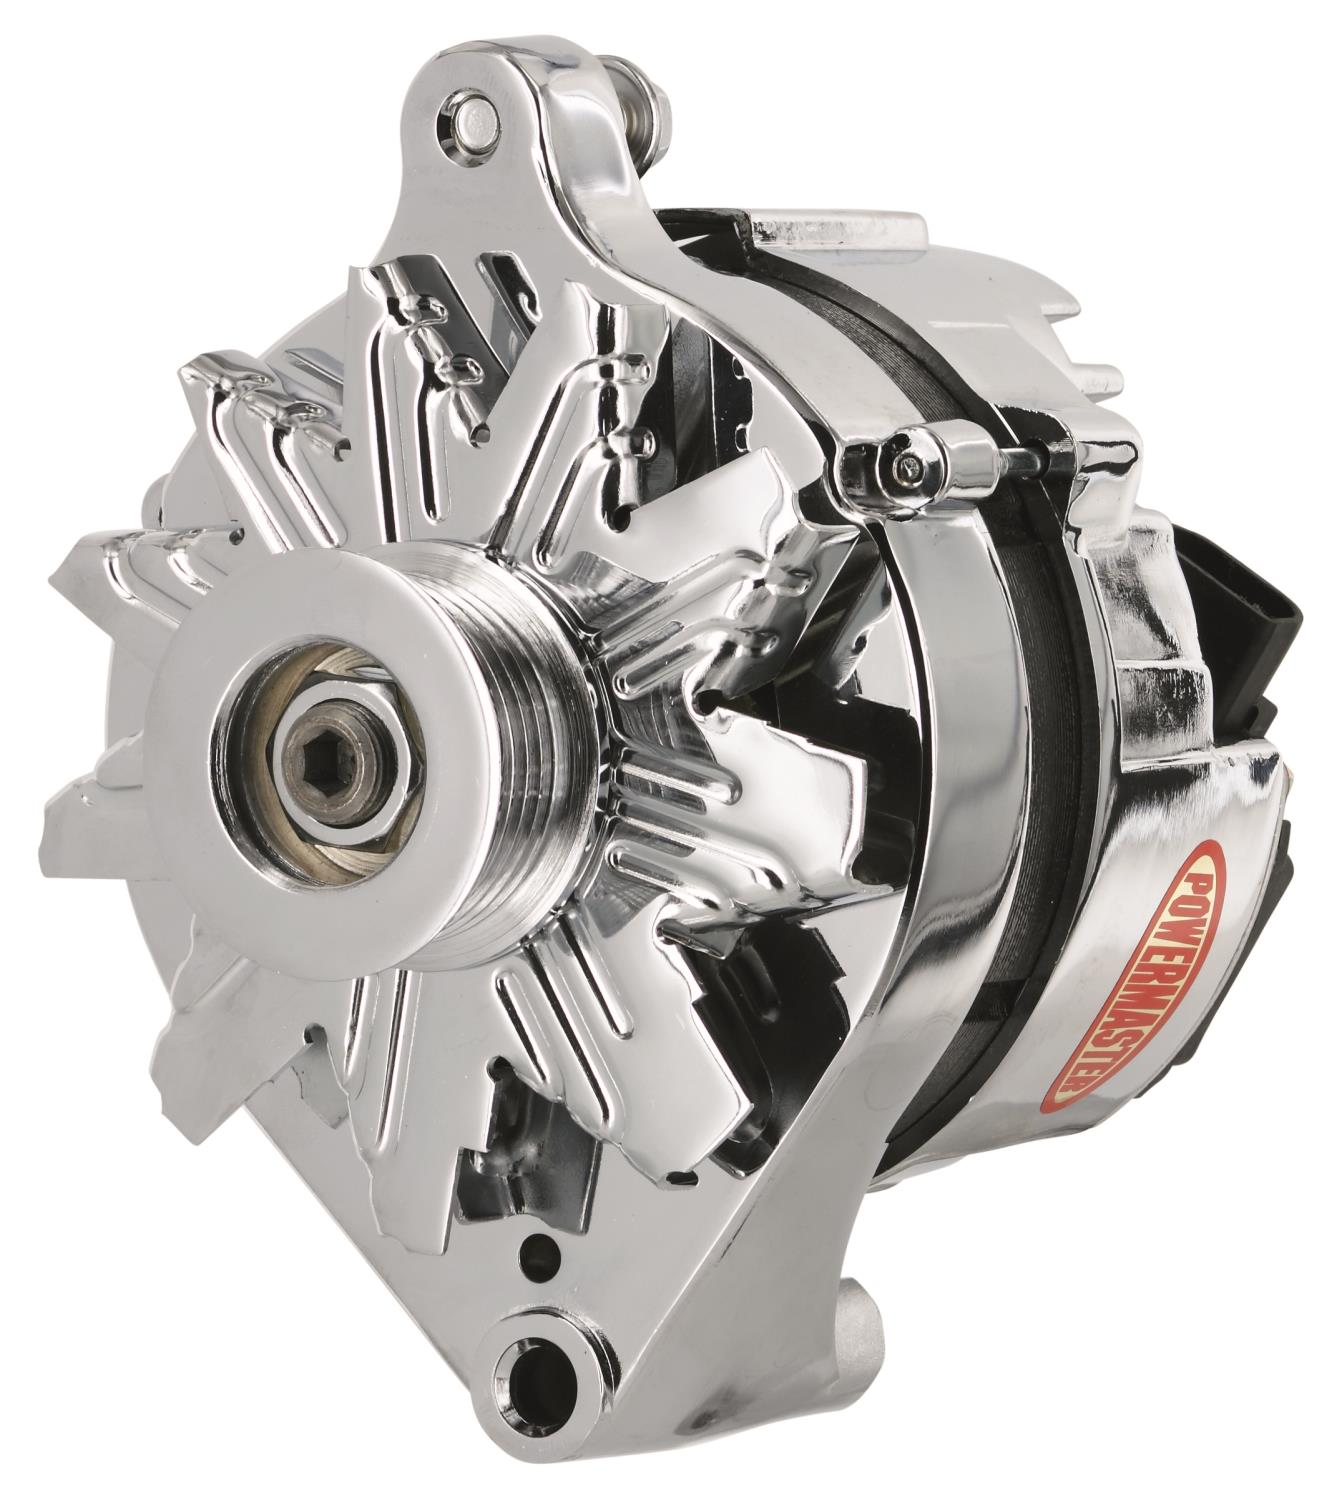 Powermaster 17735 - Powermaster 2G Style Ford Alternators